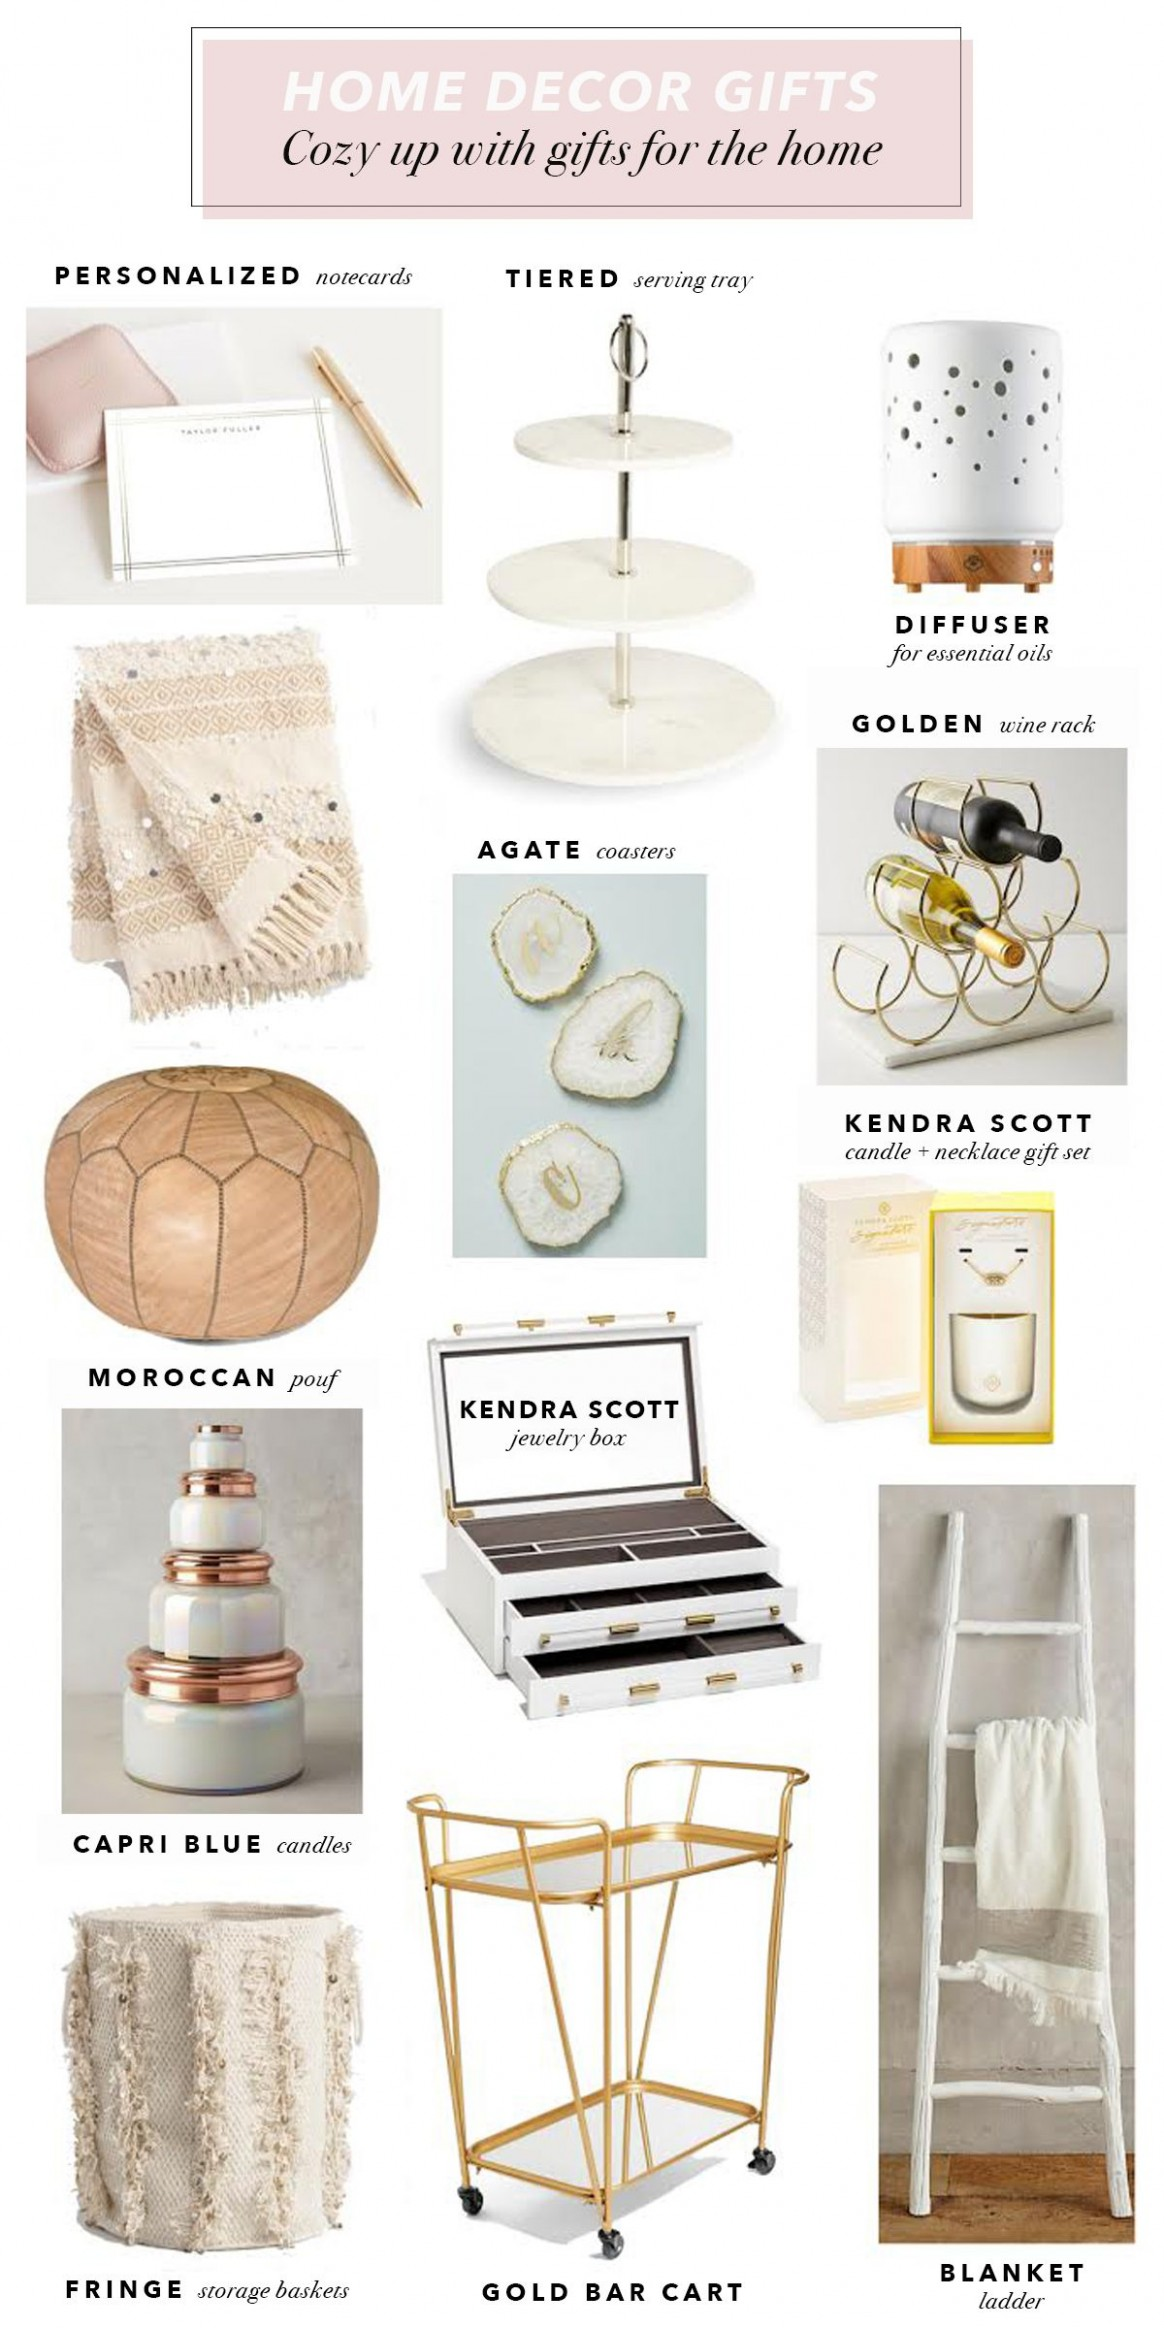 Holiday Home Decor Gift Ideas  The Lovely Gift Guide  Gifts for  - Home Office Gift Ideas